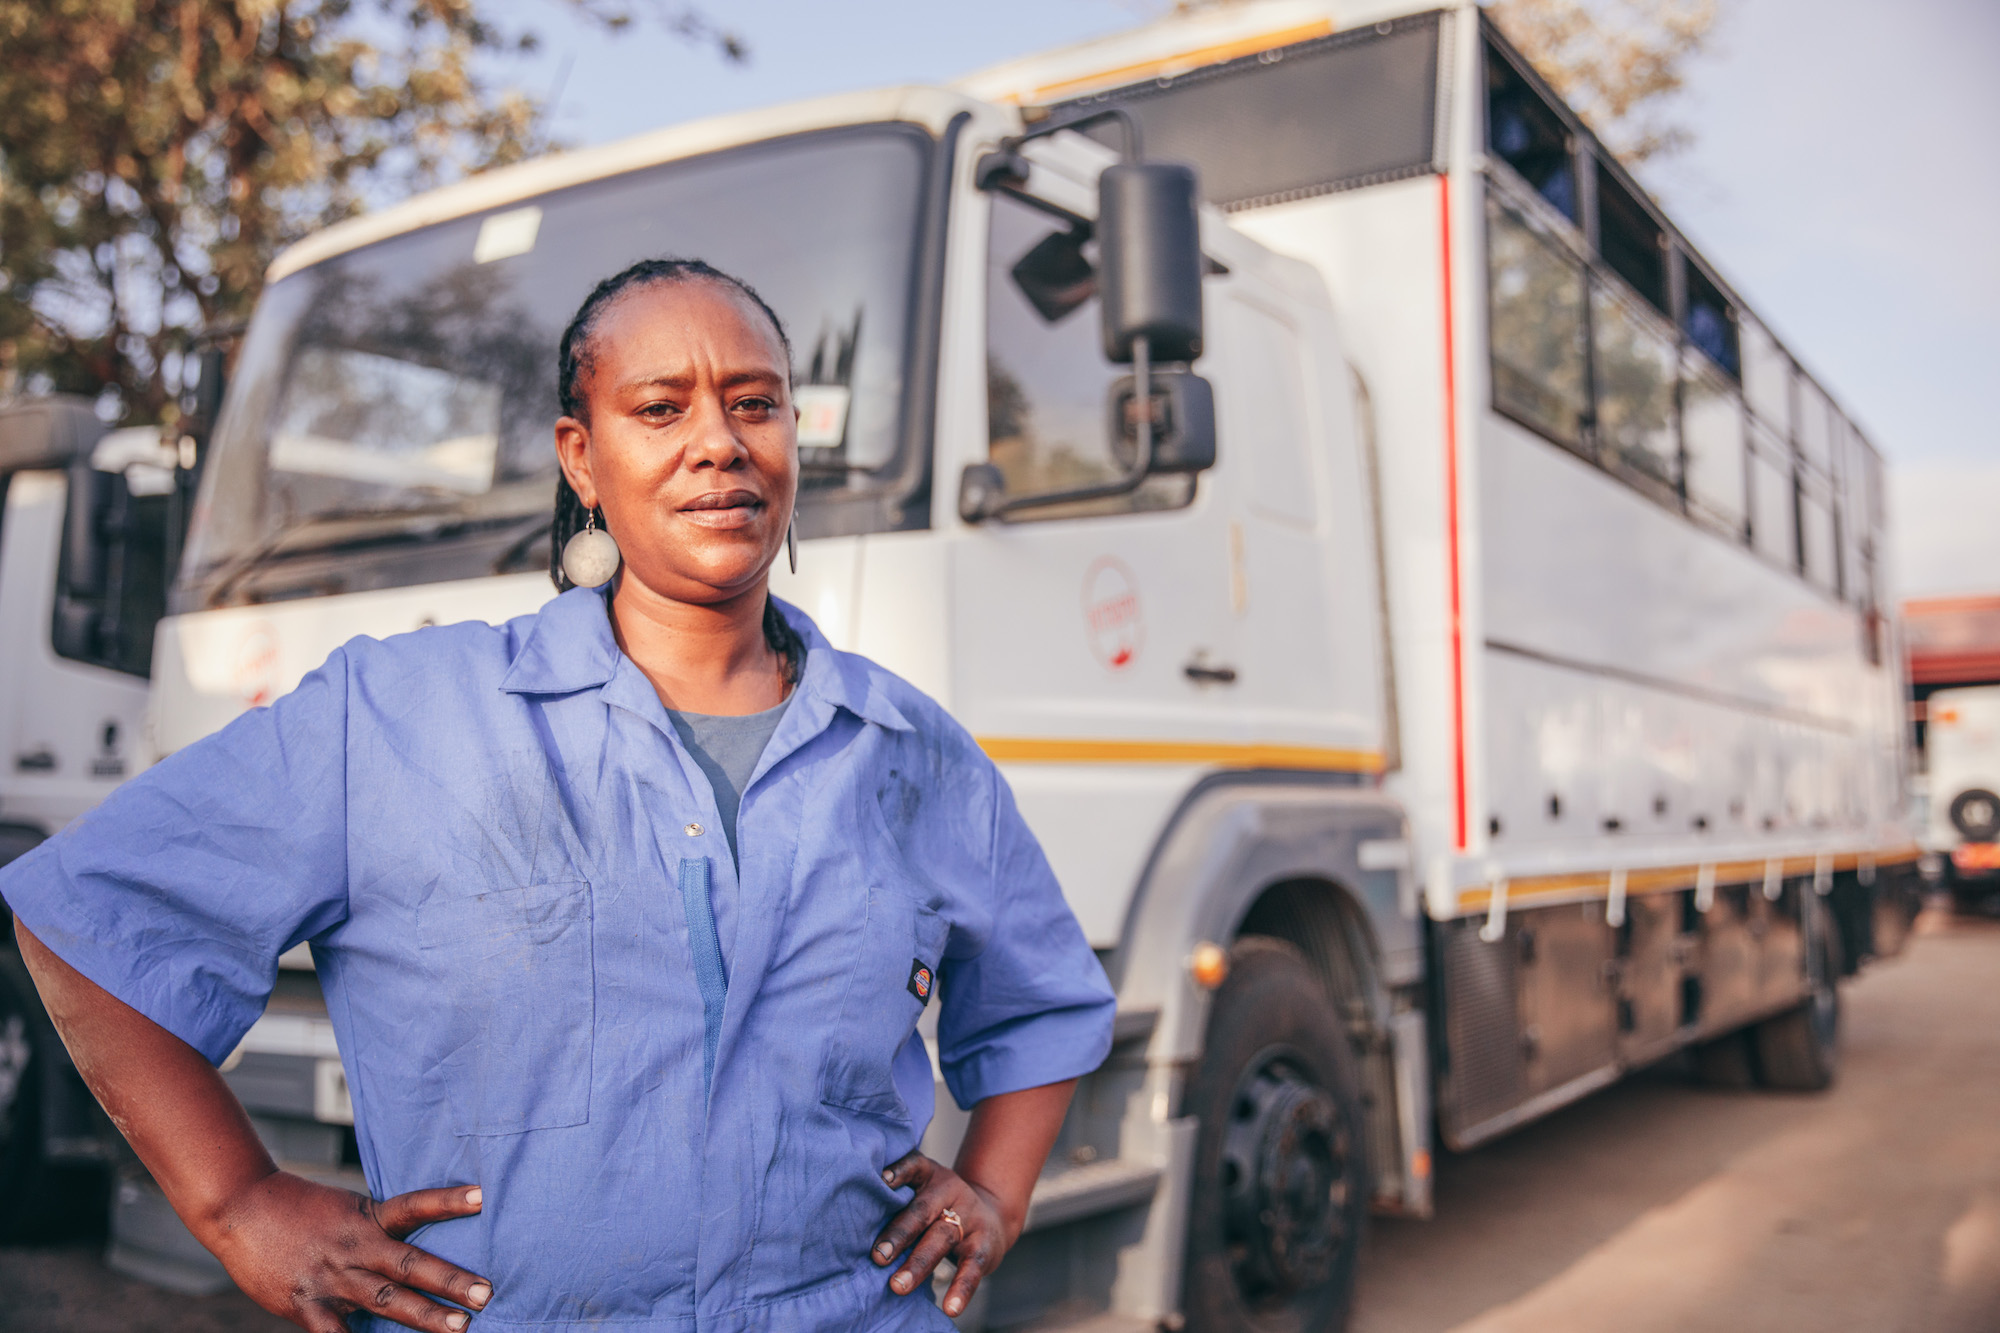 On the Kenya Women's Expedition, travelers will be led across the northern part of the country by East Africa's first female overland truck driver.